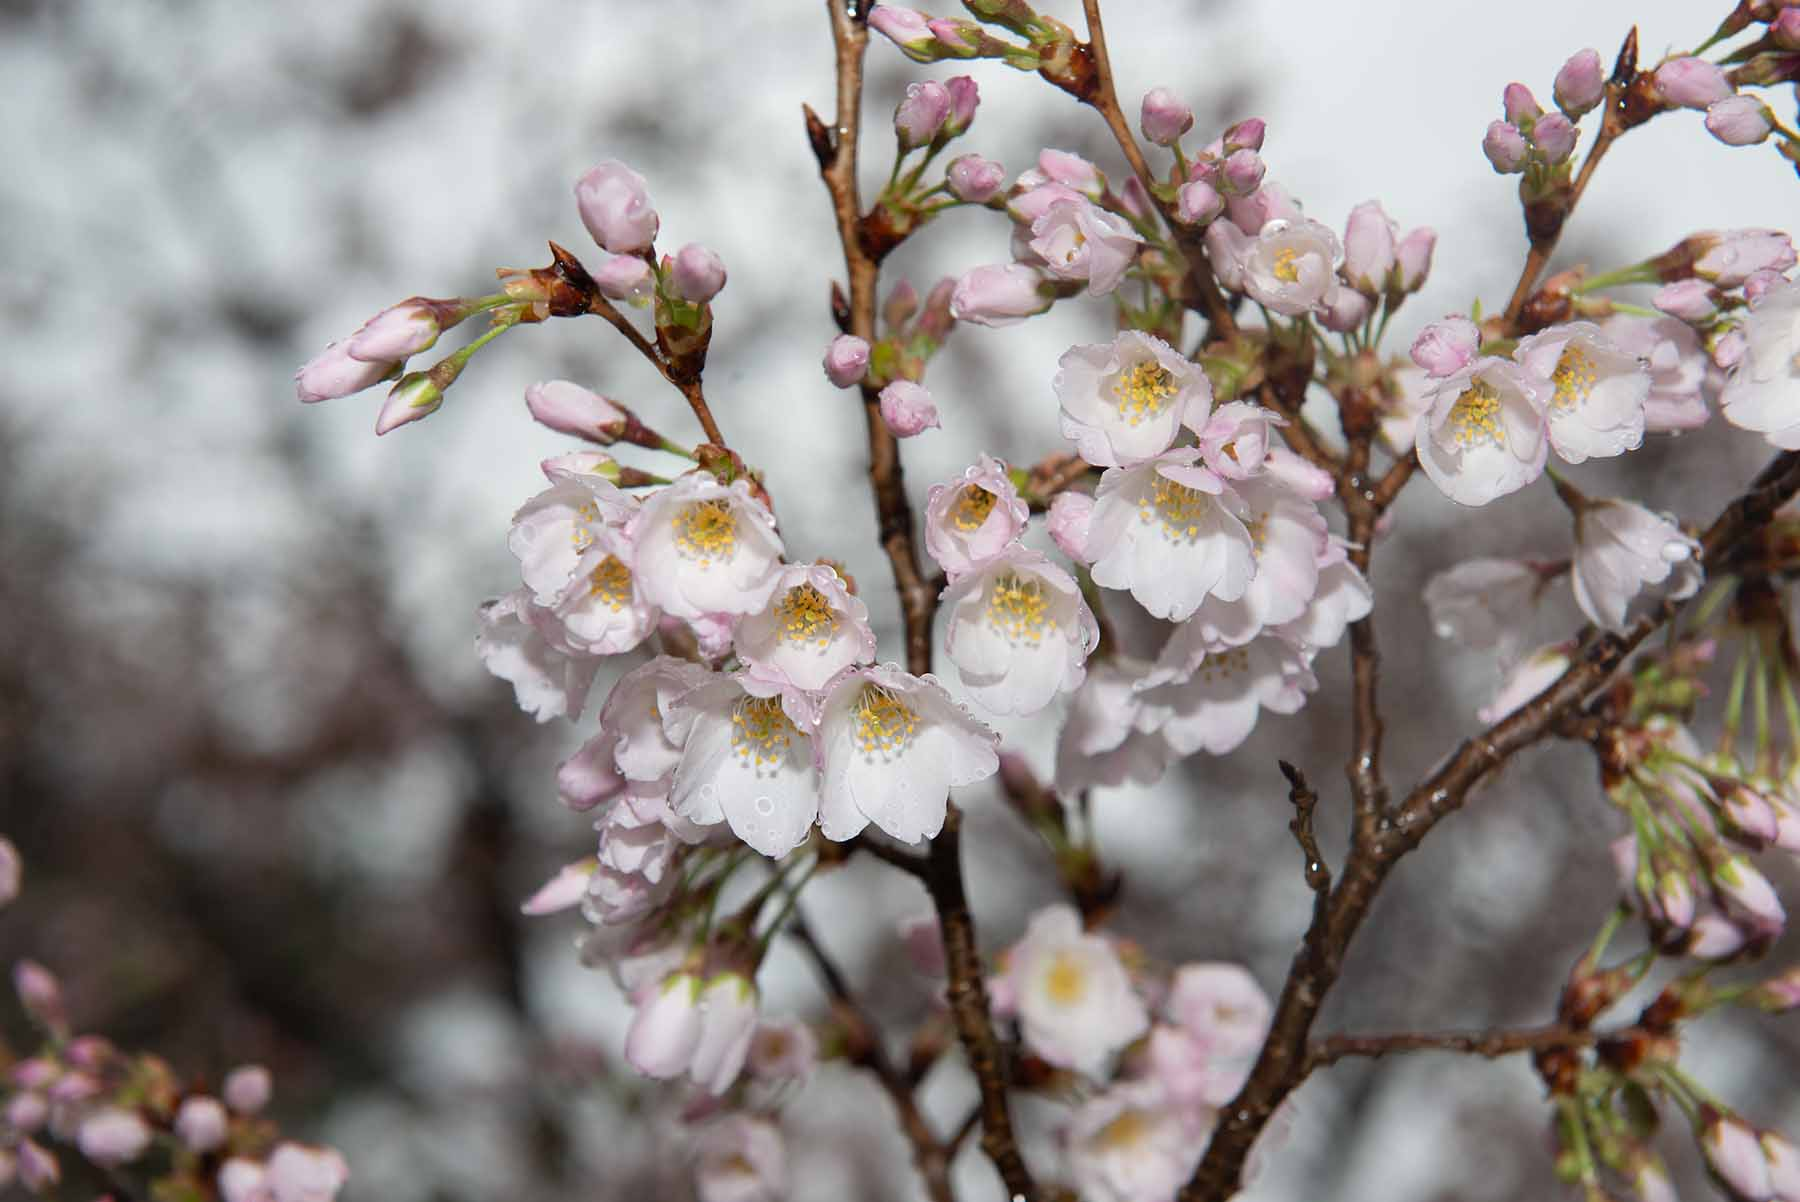 Close-up photo of a flowering cherry blossom tree limb